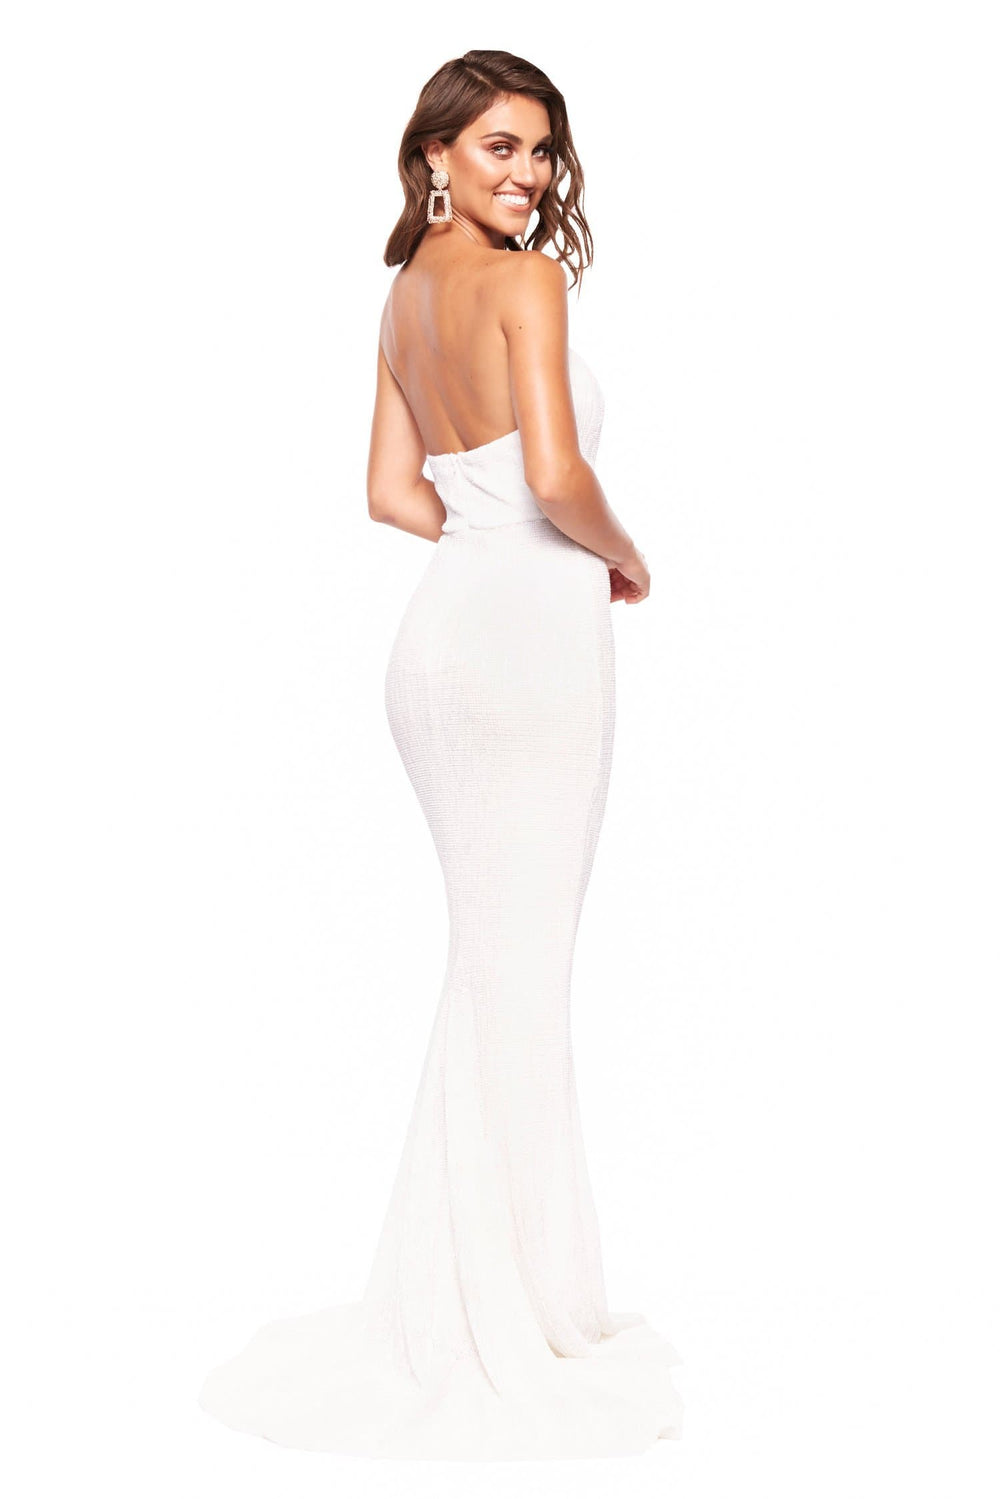 A&N Chloe - White Strapless Sequin Gown with Mermaid Silhouette